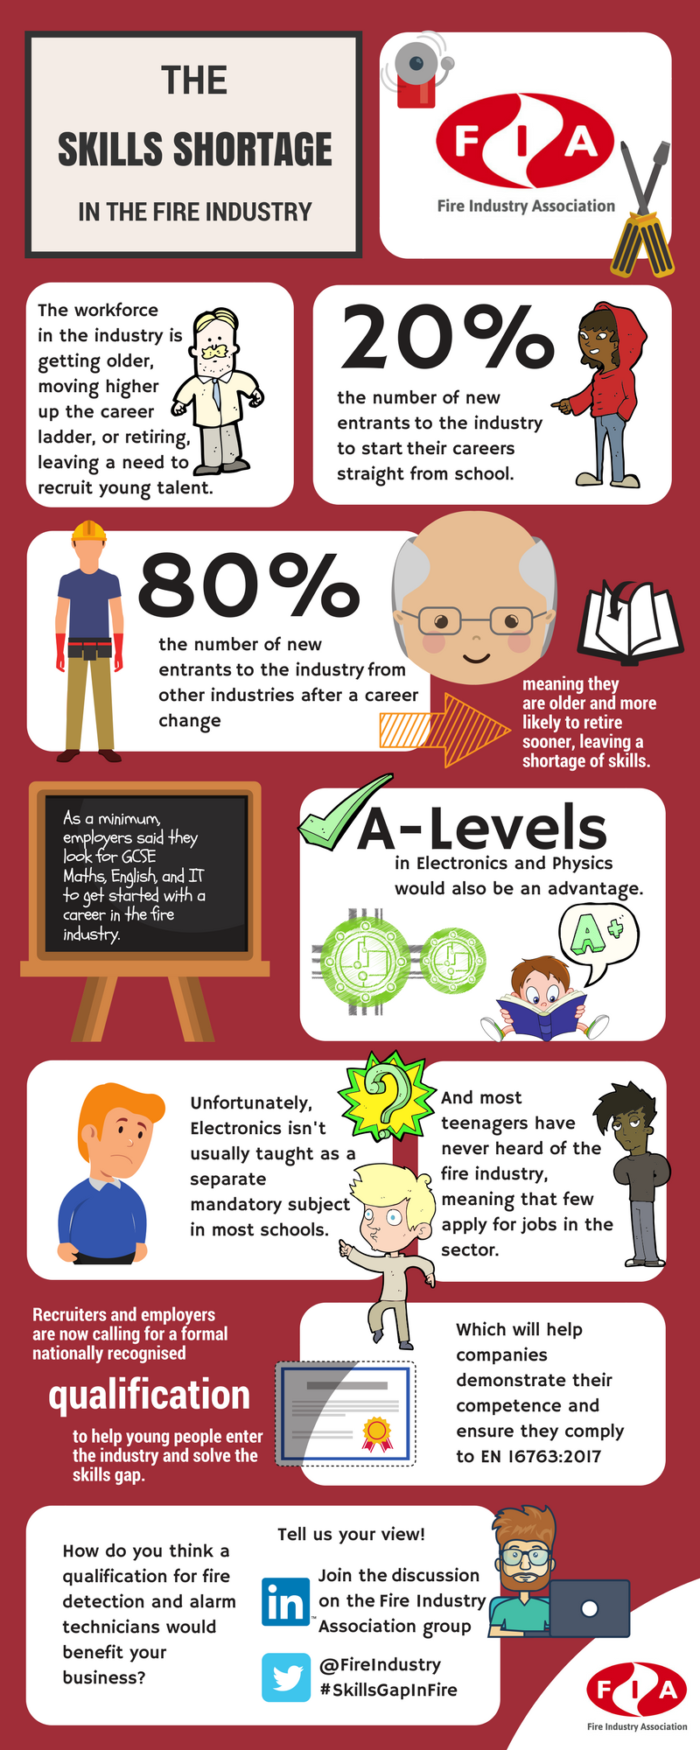 The-Skills-Shortage-In-the-Fire-Industry-infographic-64d9d75a8bc2e3b97052cdb49cae1690b2095ded